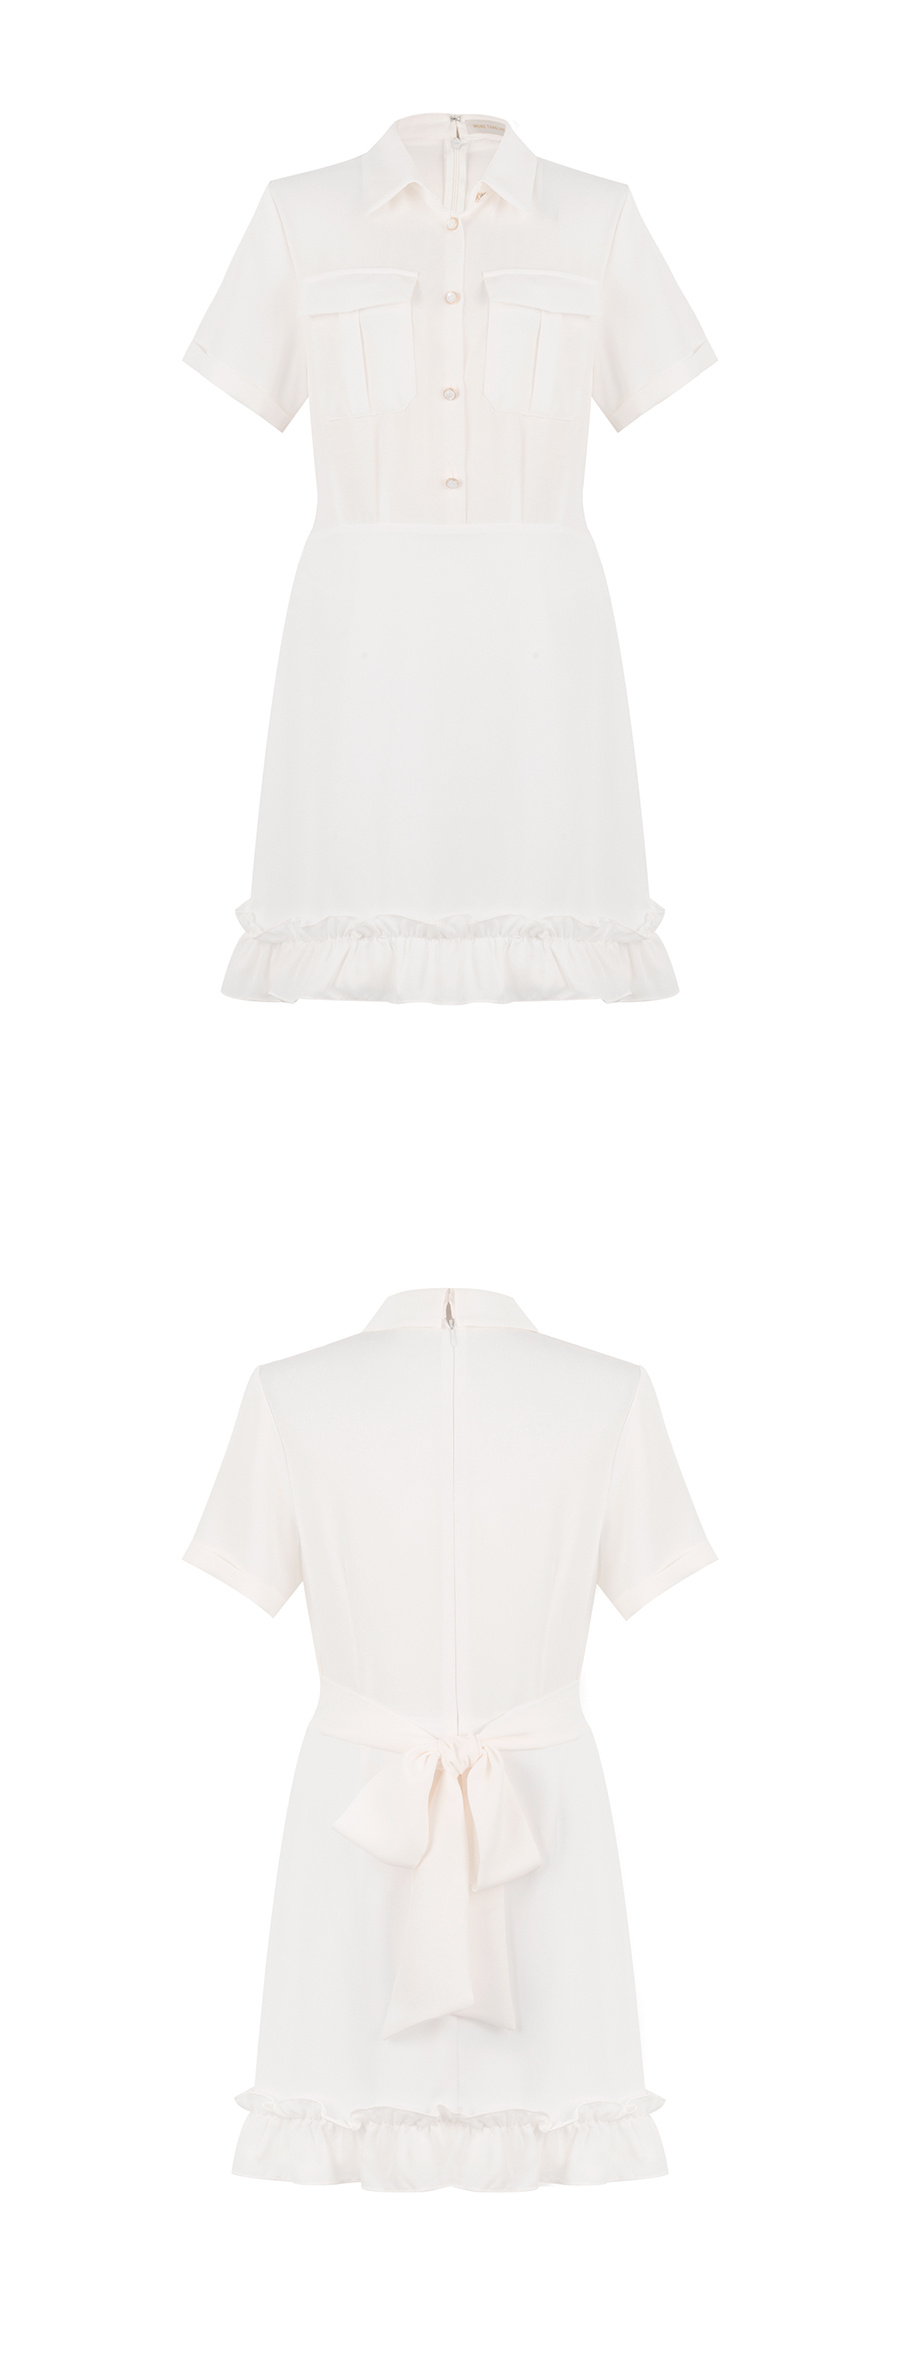 모어댄라이크(MORE THAN LIKE) POCKET COLLAR DRESS - IVORY